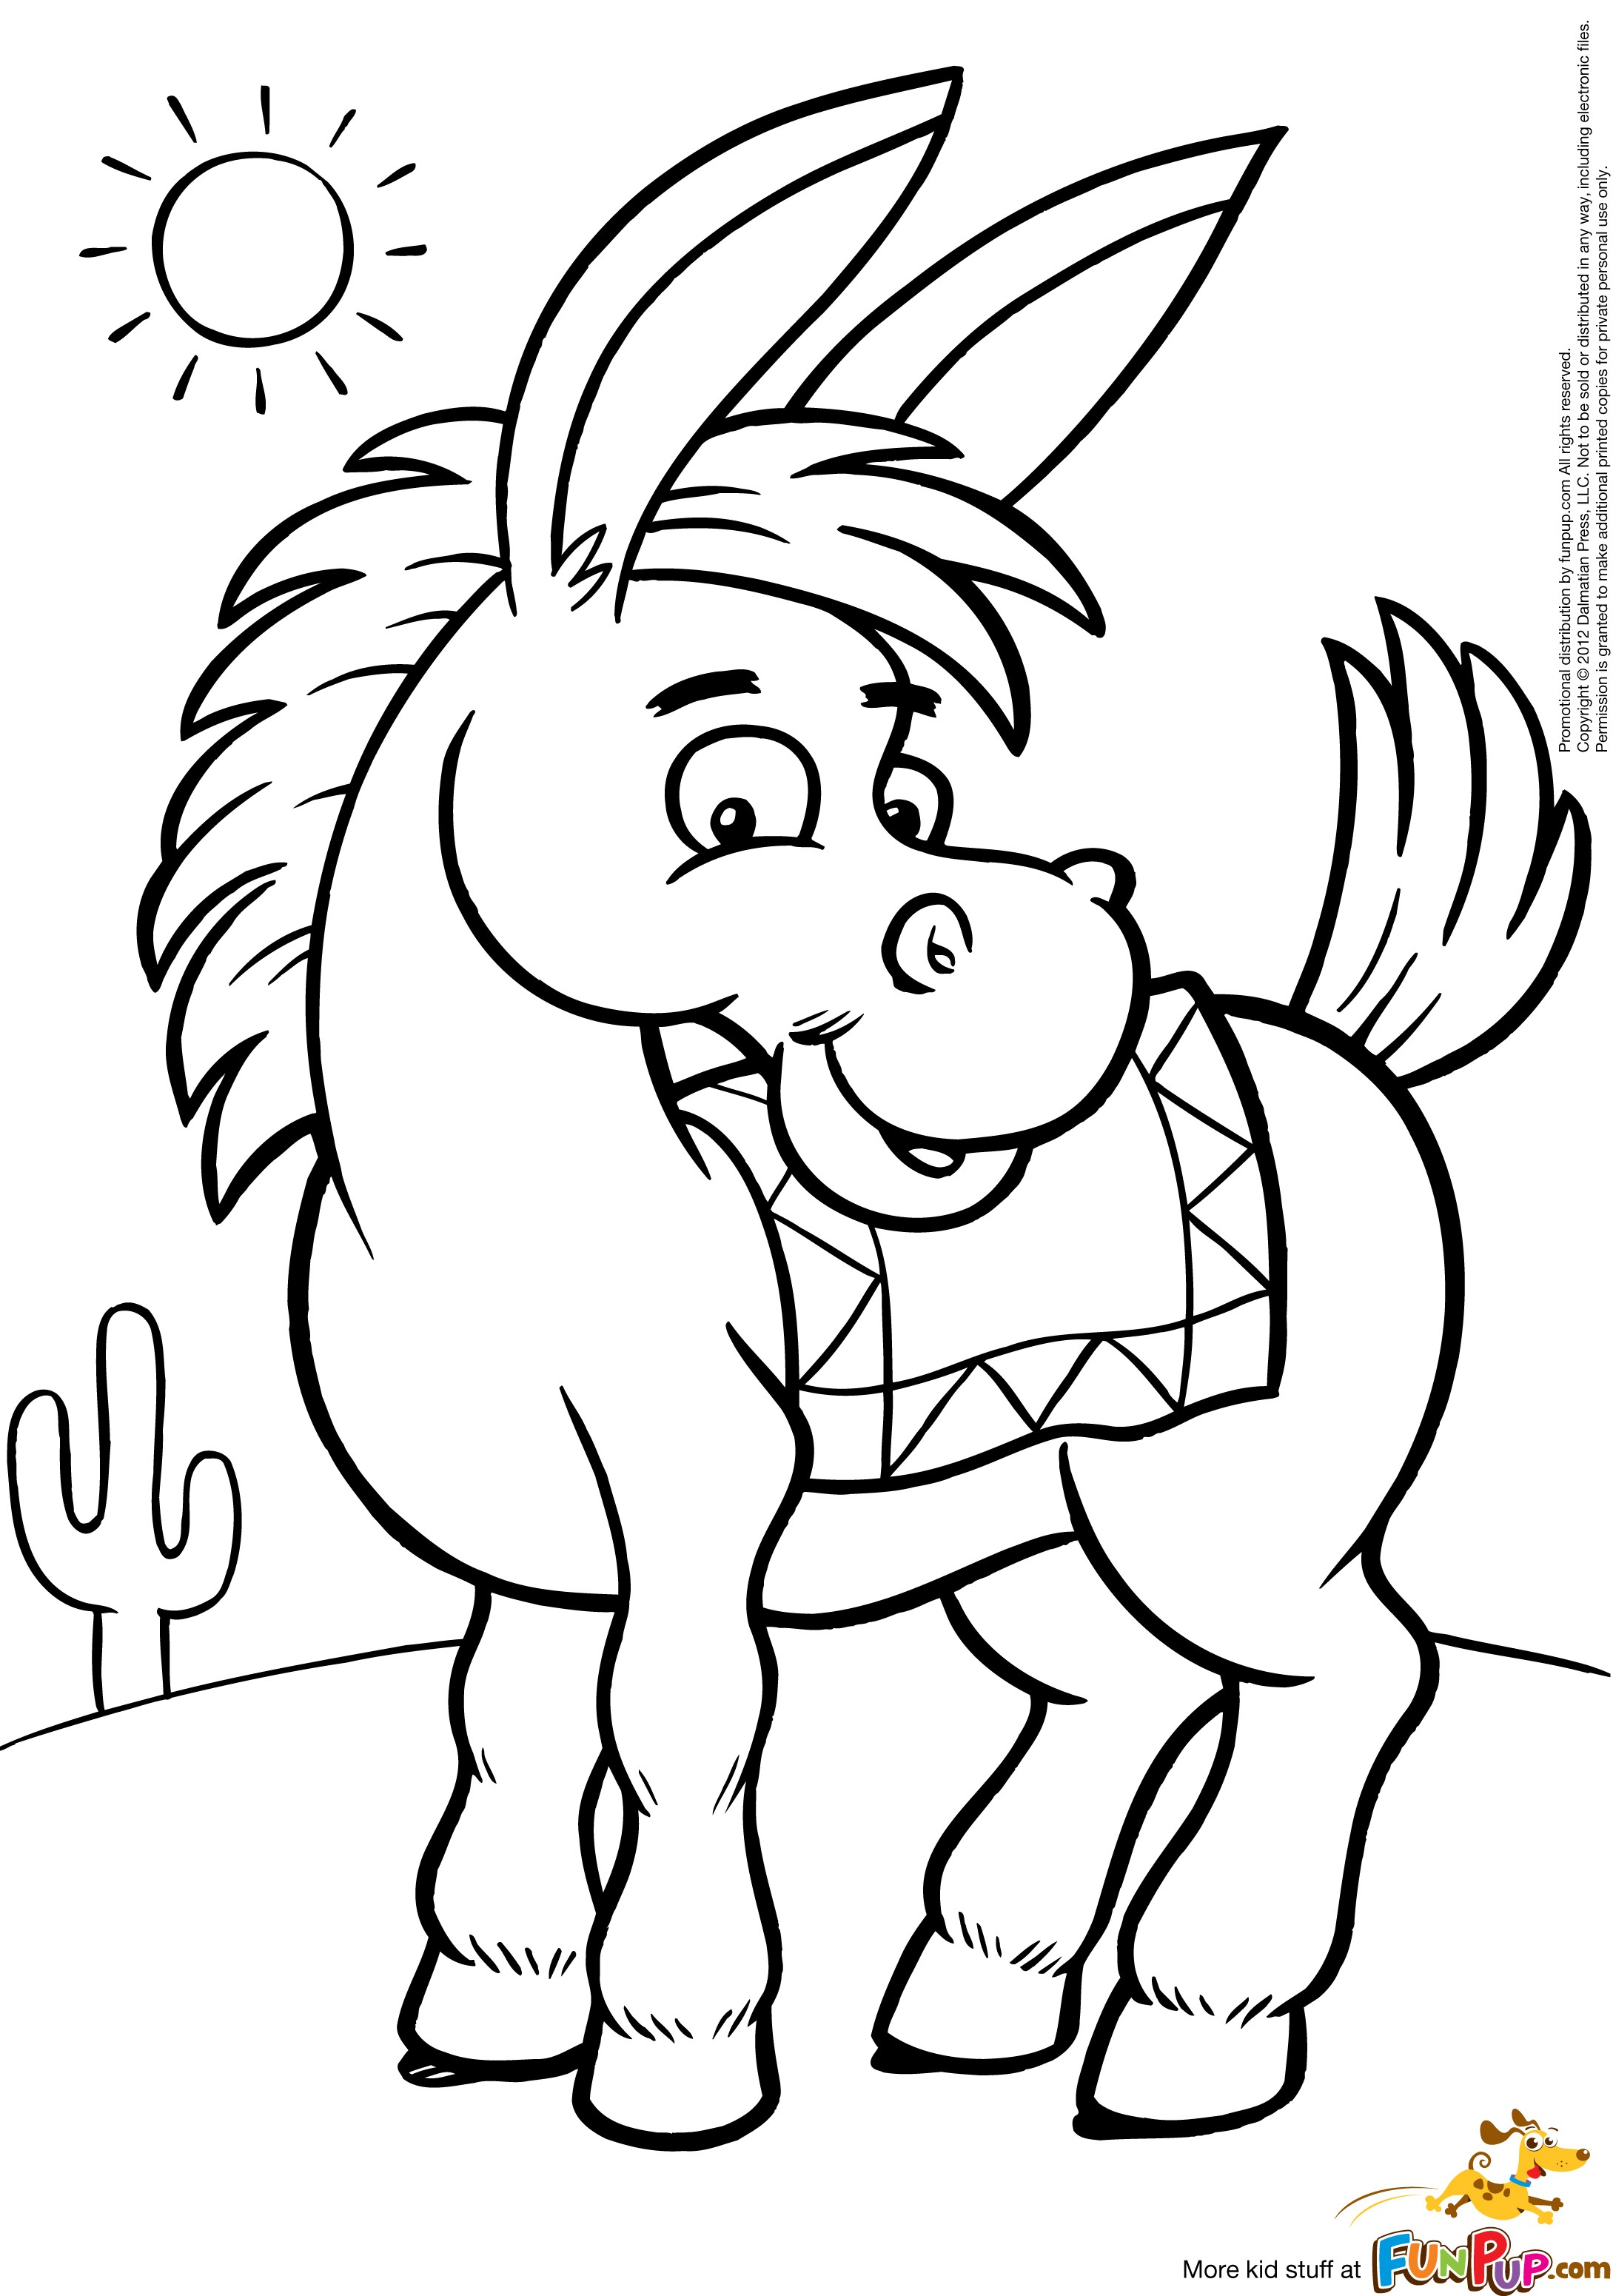 coloring picture printable donkey coloring pages to download and print for free coloring picture printable